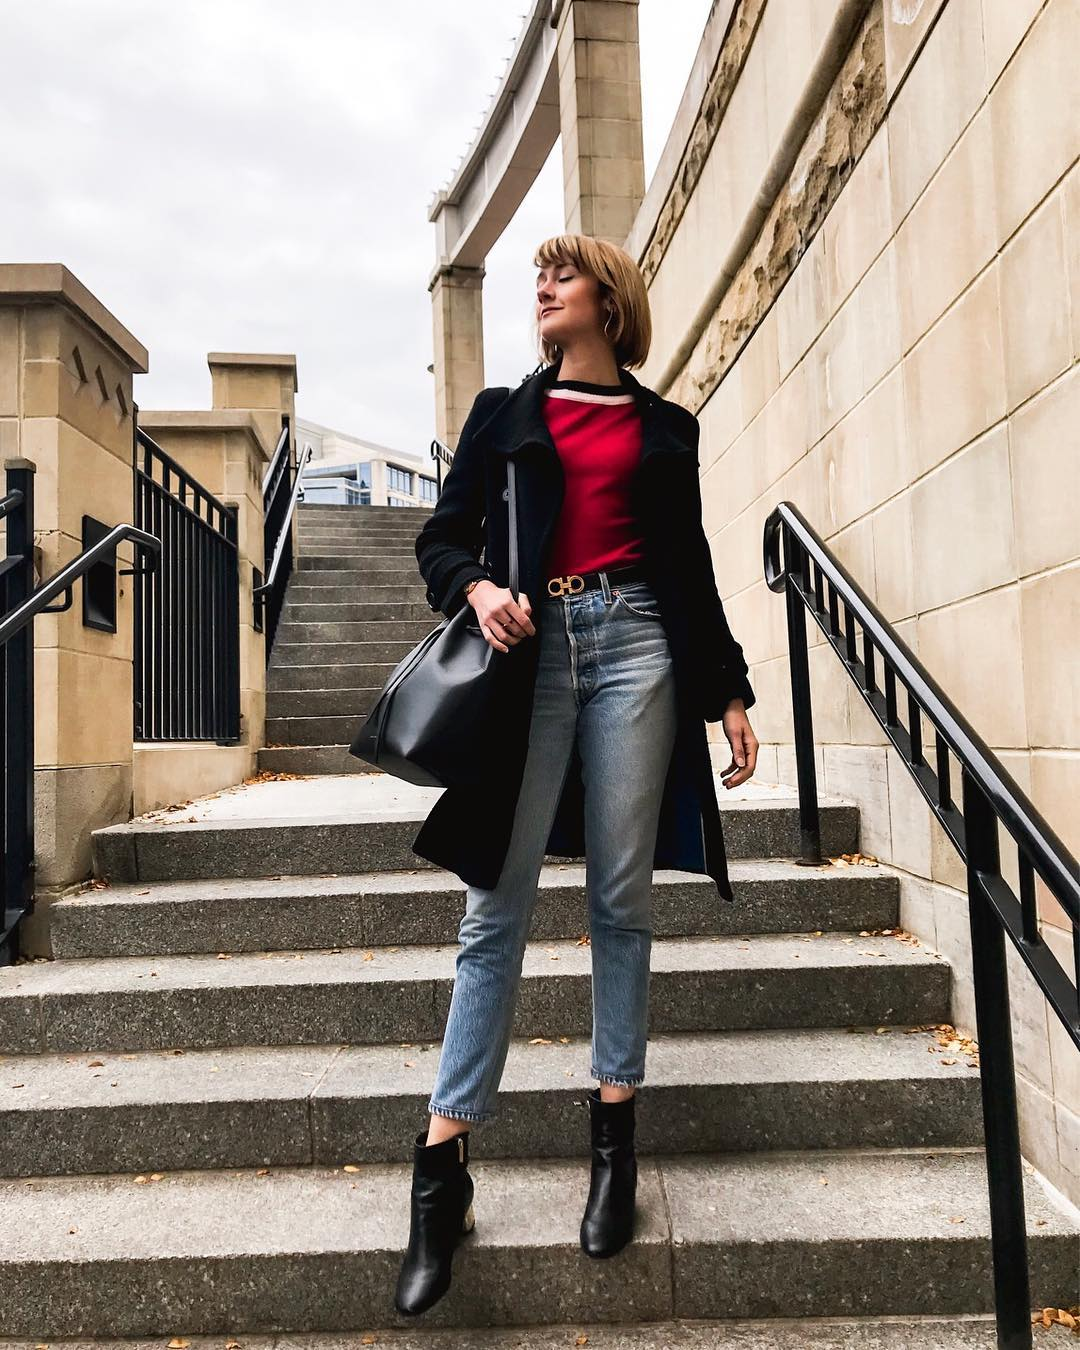 Marni sweaters and Re/Done jeans